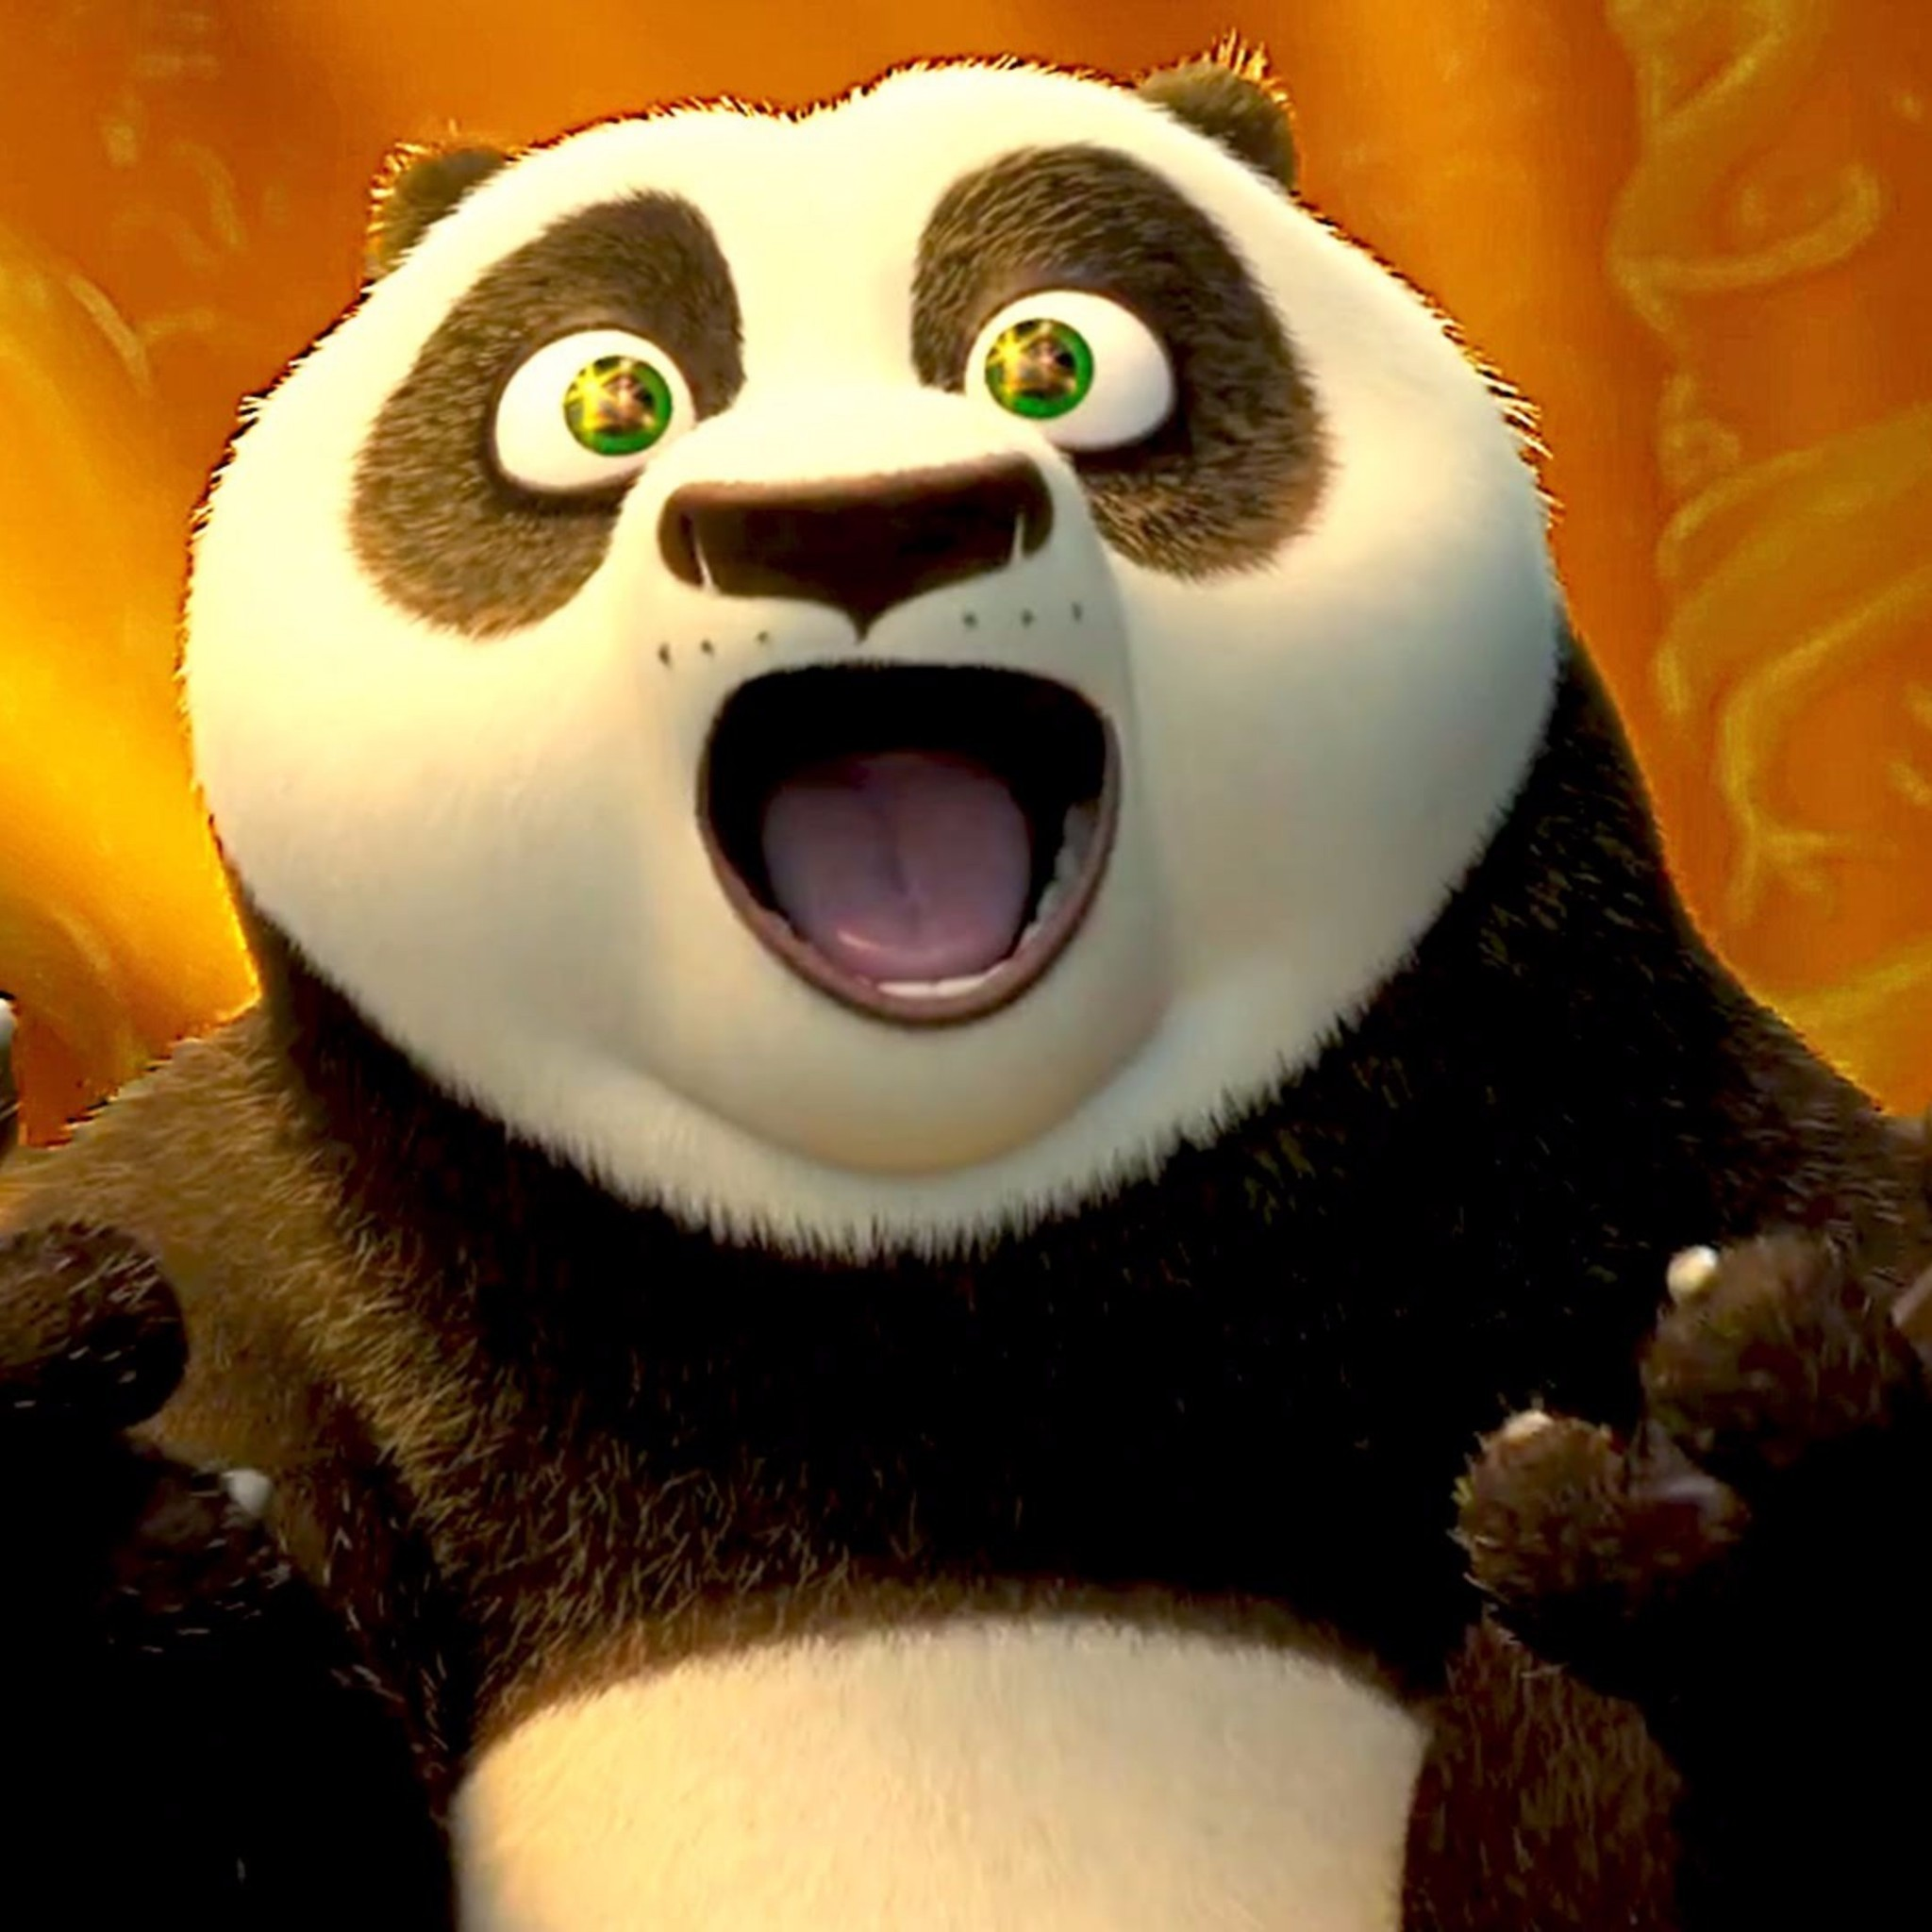 … kung fu panda wallpaper hd for mobile image gallery hcpr …